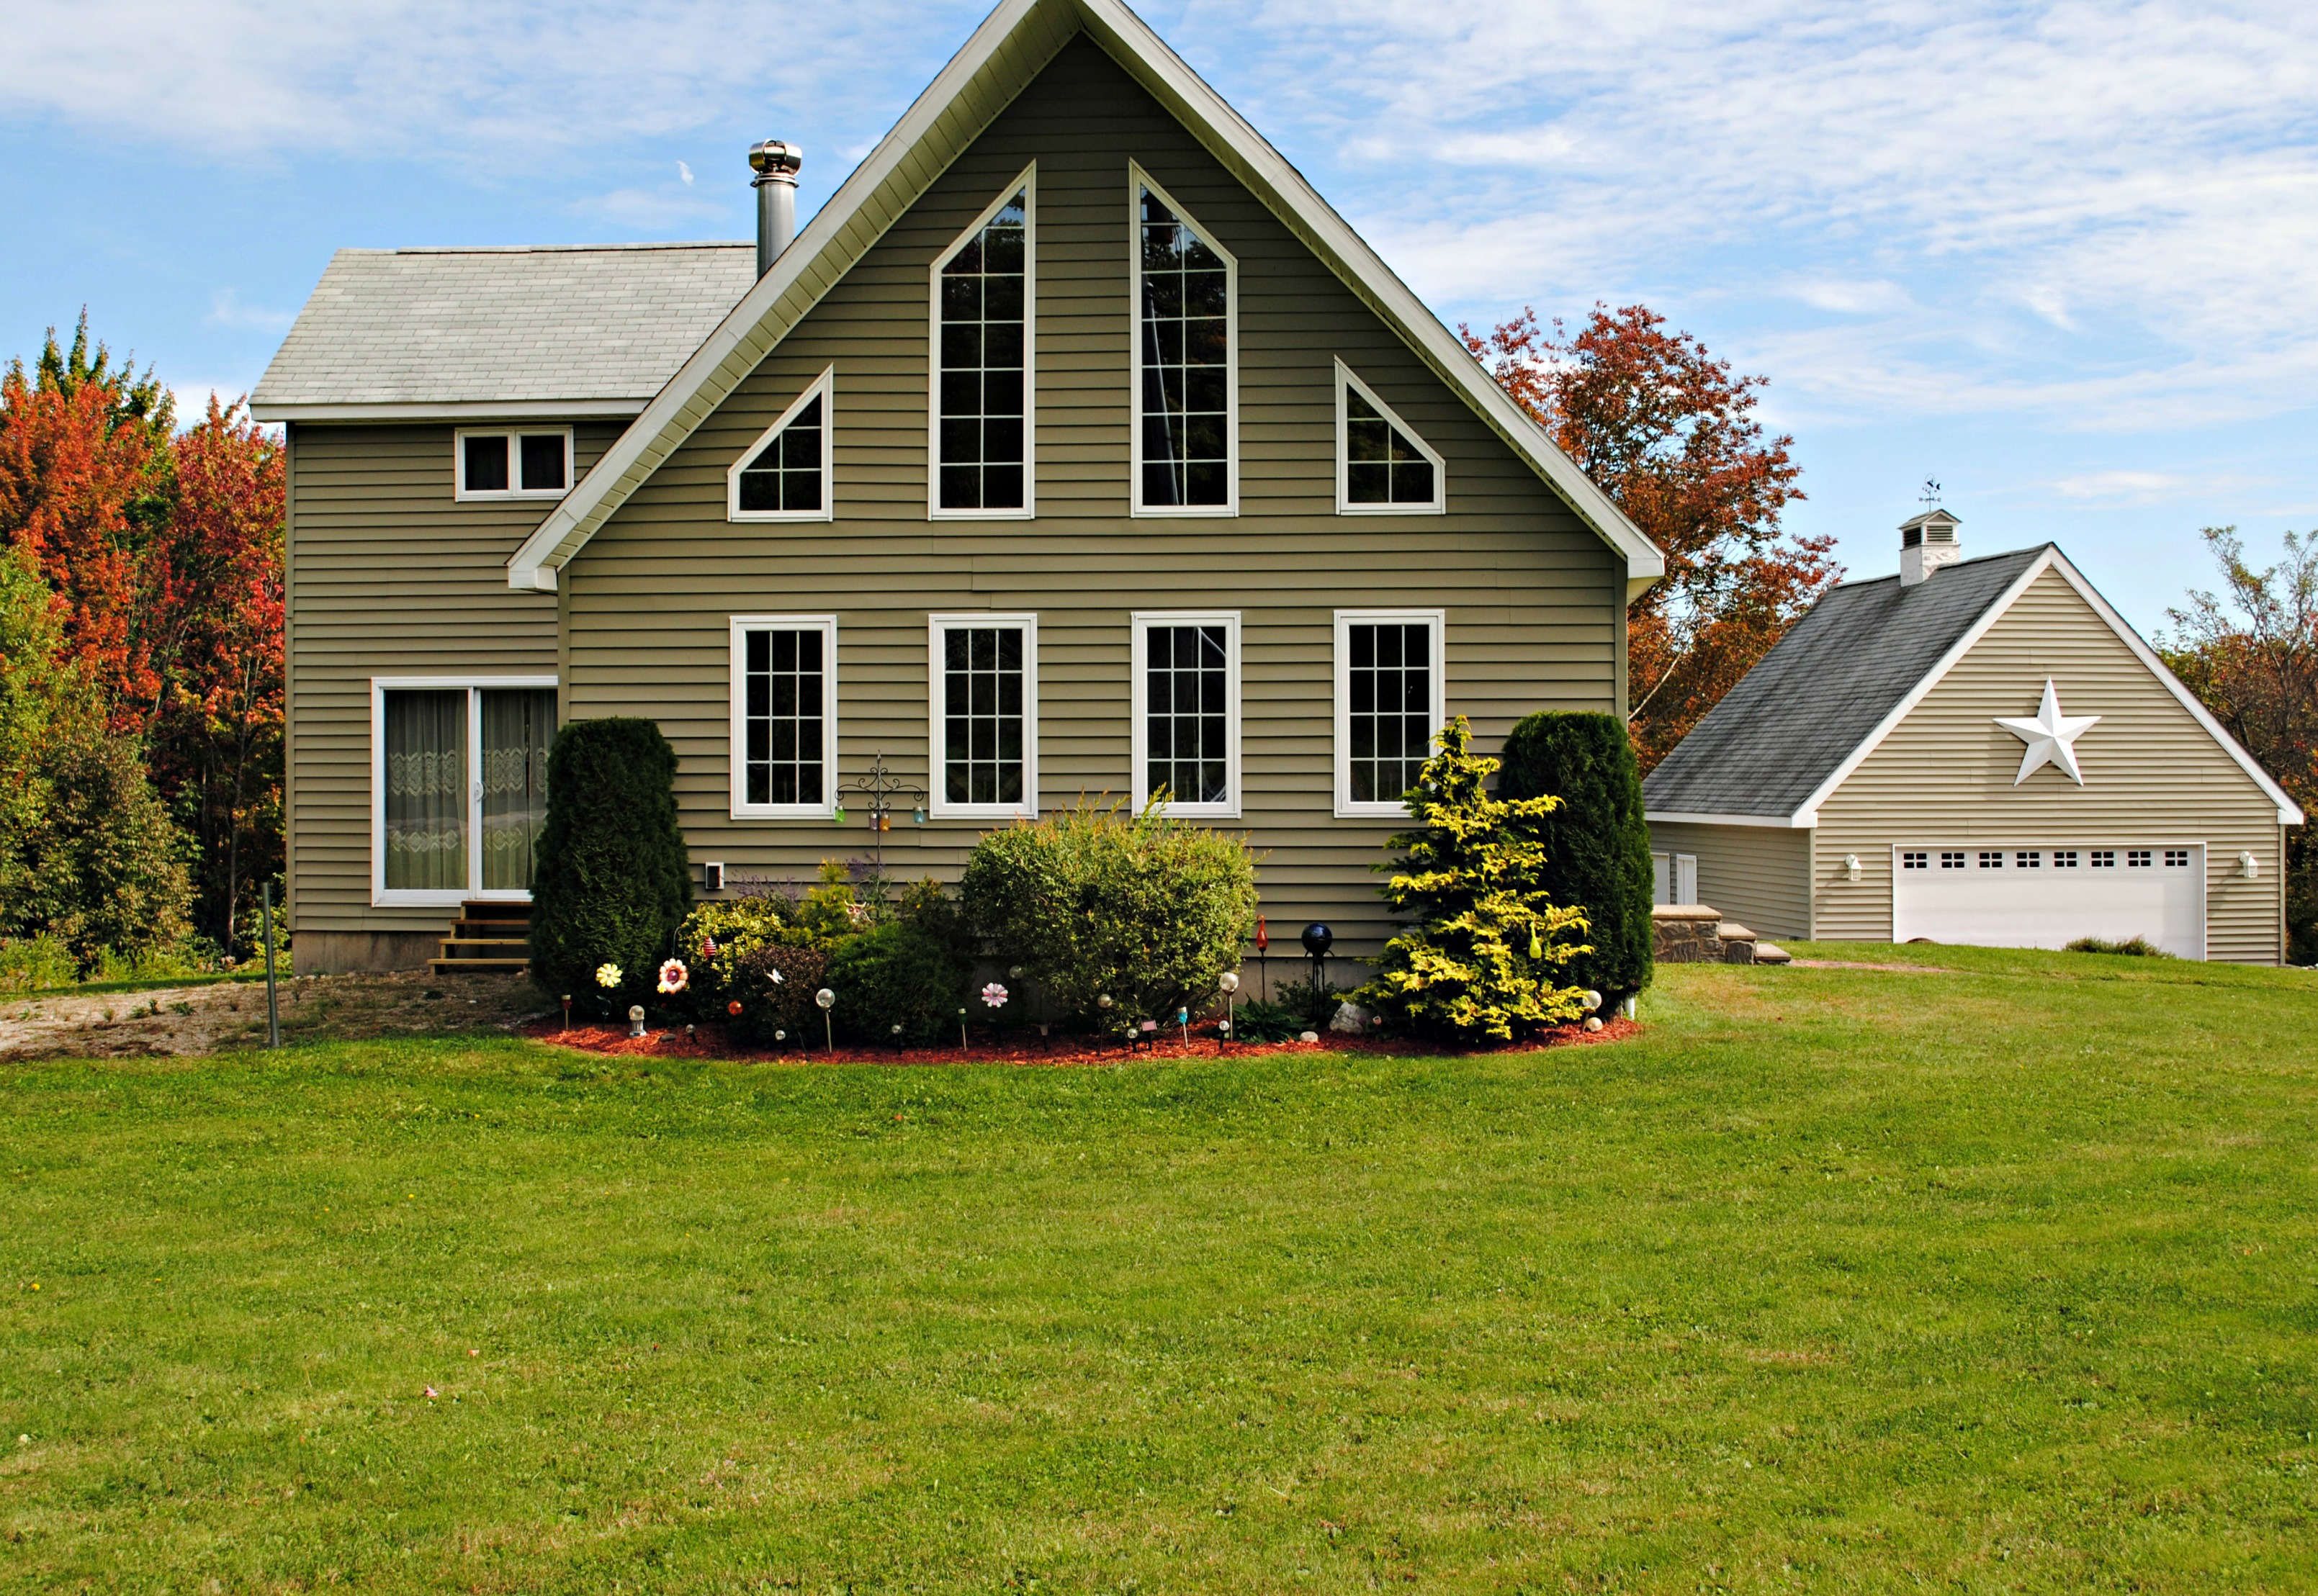 Single Family Home for Sale at Direct Access to VAST Trails 756 Wilmington Cross Rd Whitingham, Vermont, 05361 United States